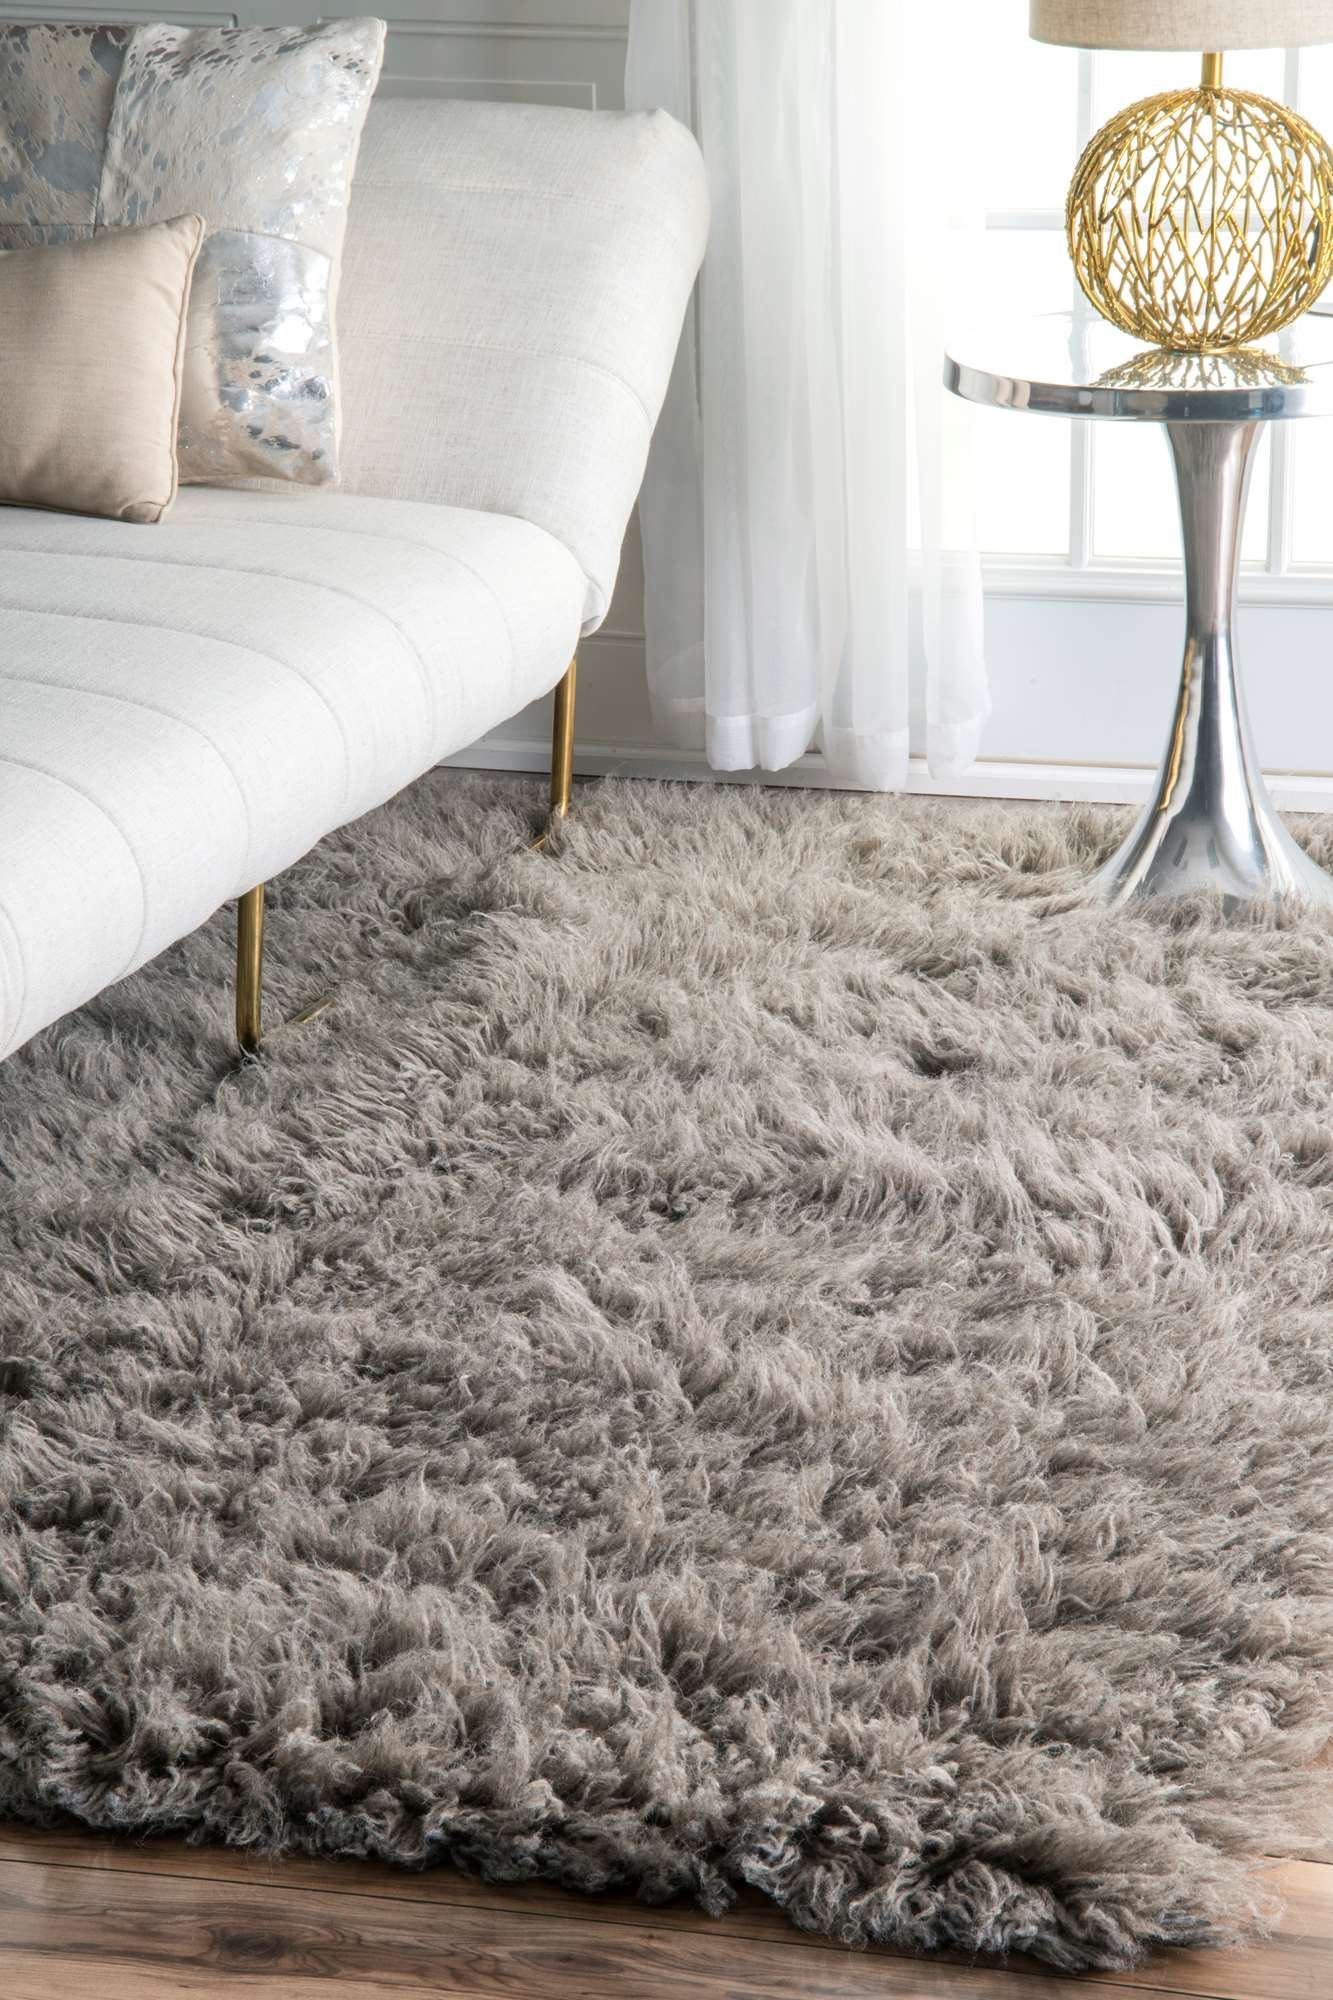 Shaggy Rugs Rugs USA - carpets in many styles including modern, braided, PJHZPNY